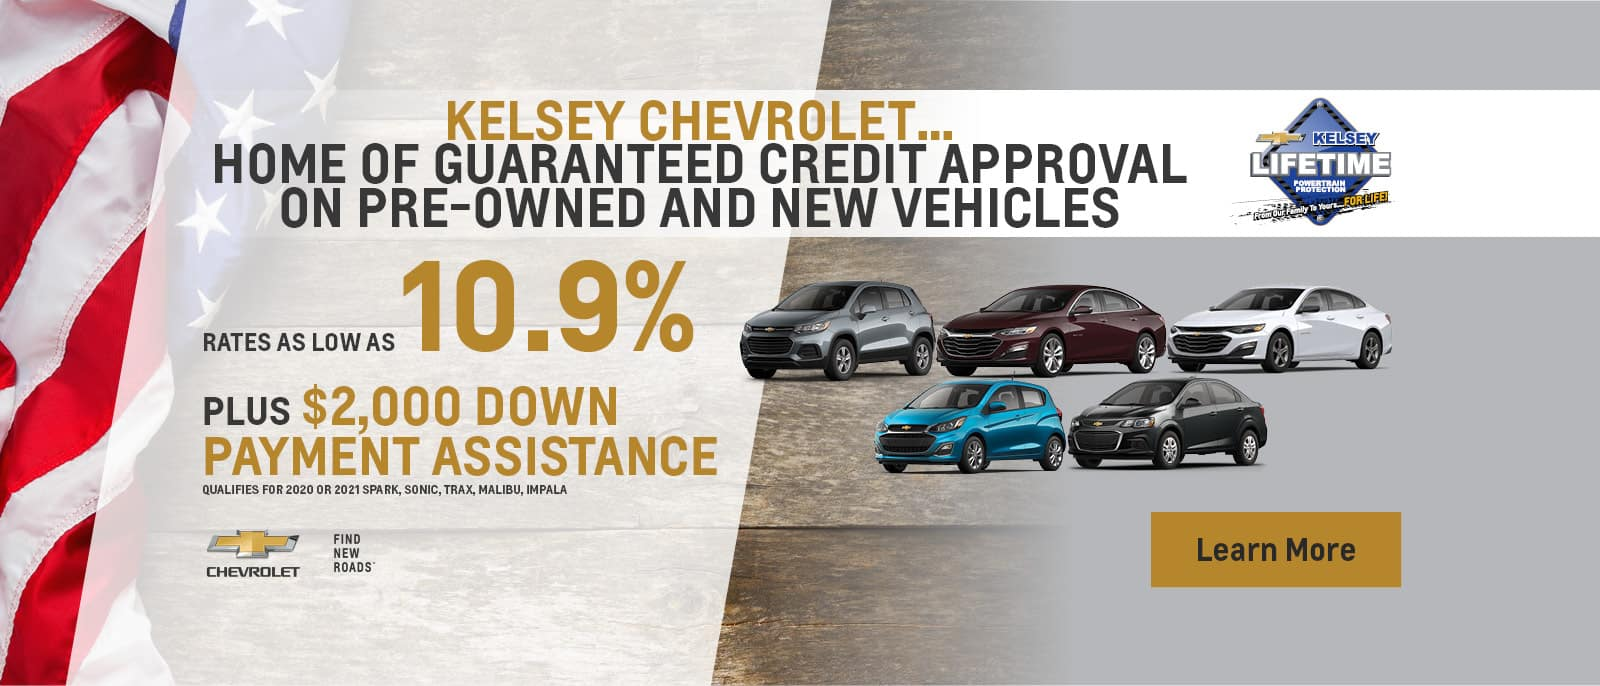 Home of Guaranteed Credit Approval